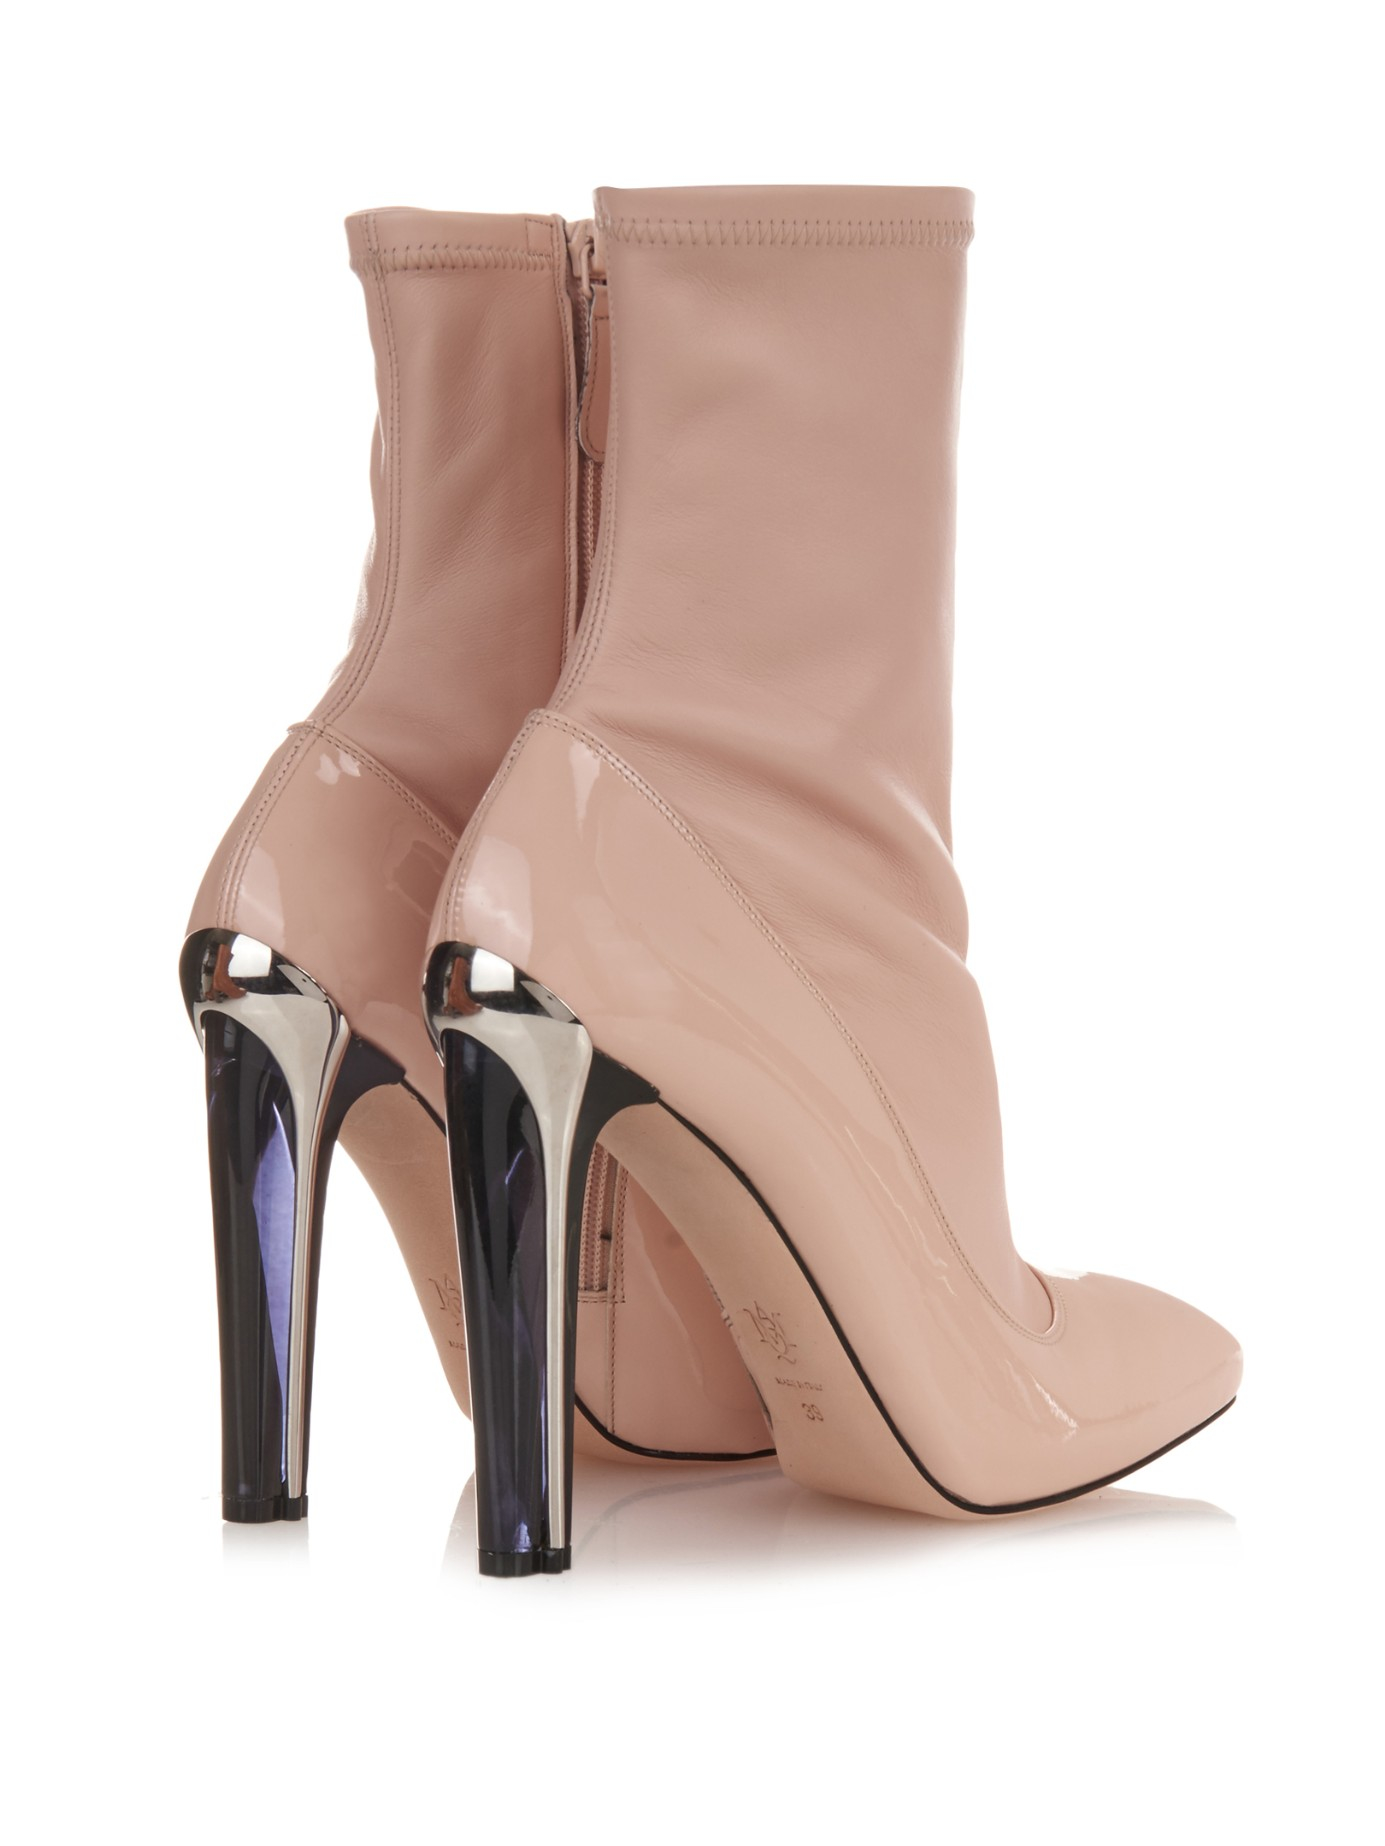 5eed3b688d9 Lyst - Alexander McQueen Perspex-Heel Leather Ankle Boots in Pink